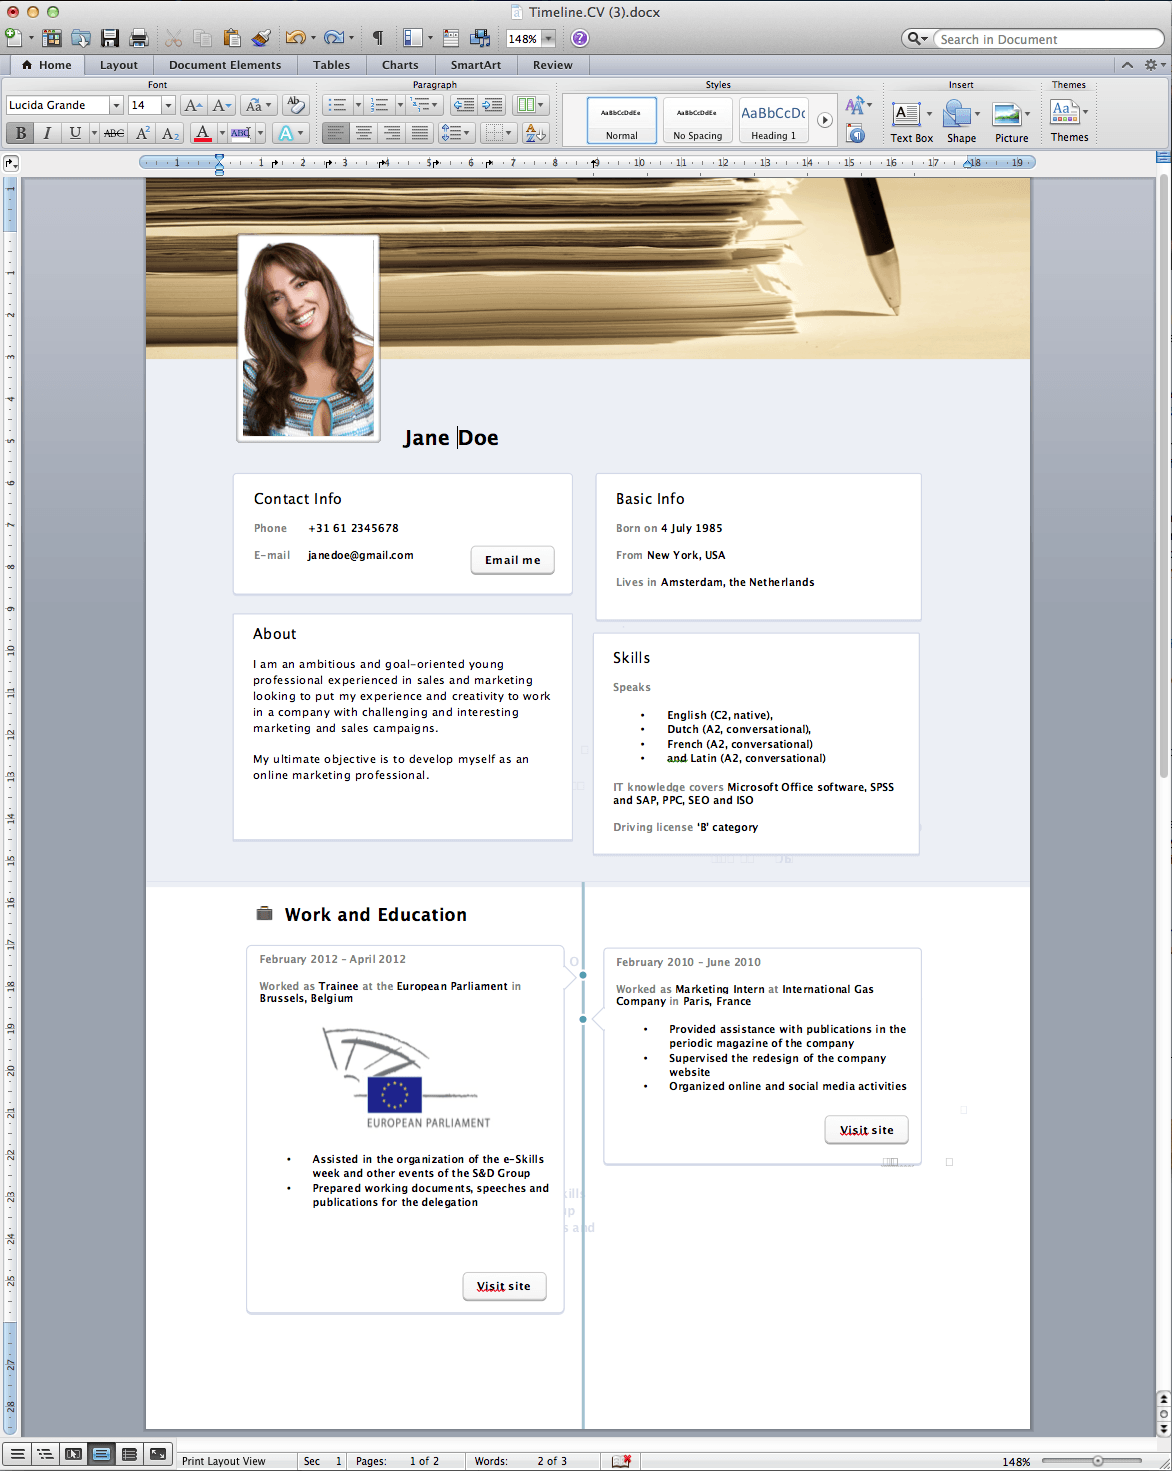 facebook timeline resume template word free rogier trimpe - How To Use Resume Template In Word